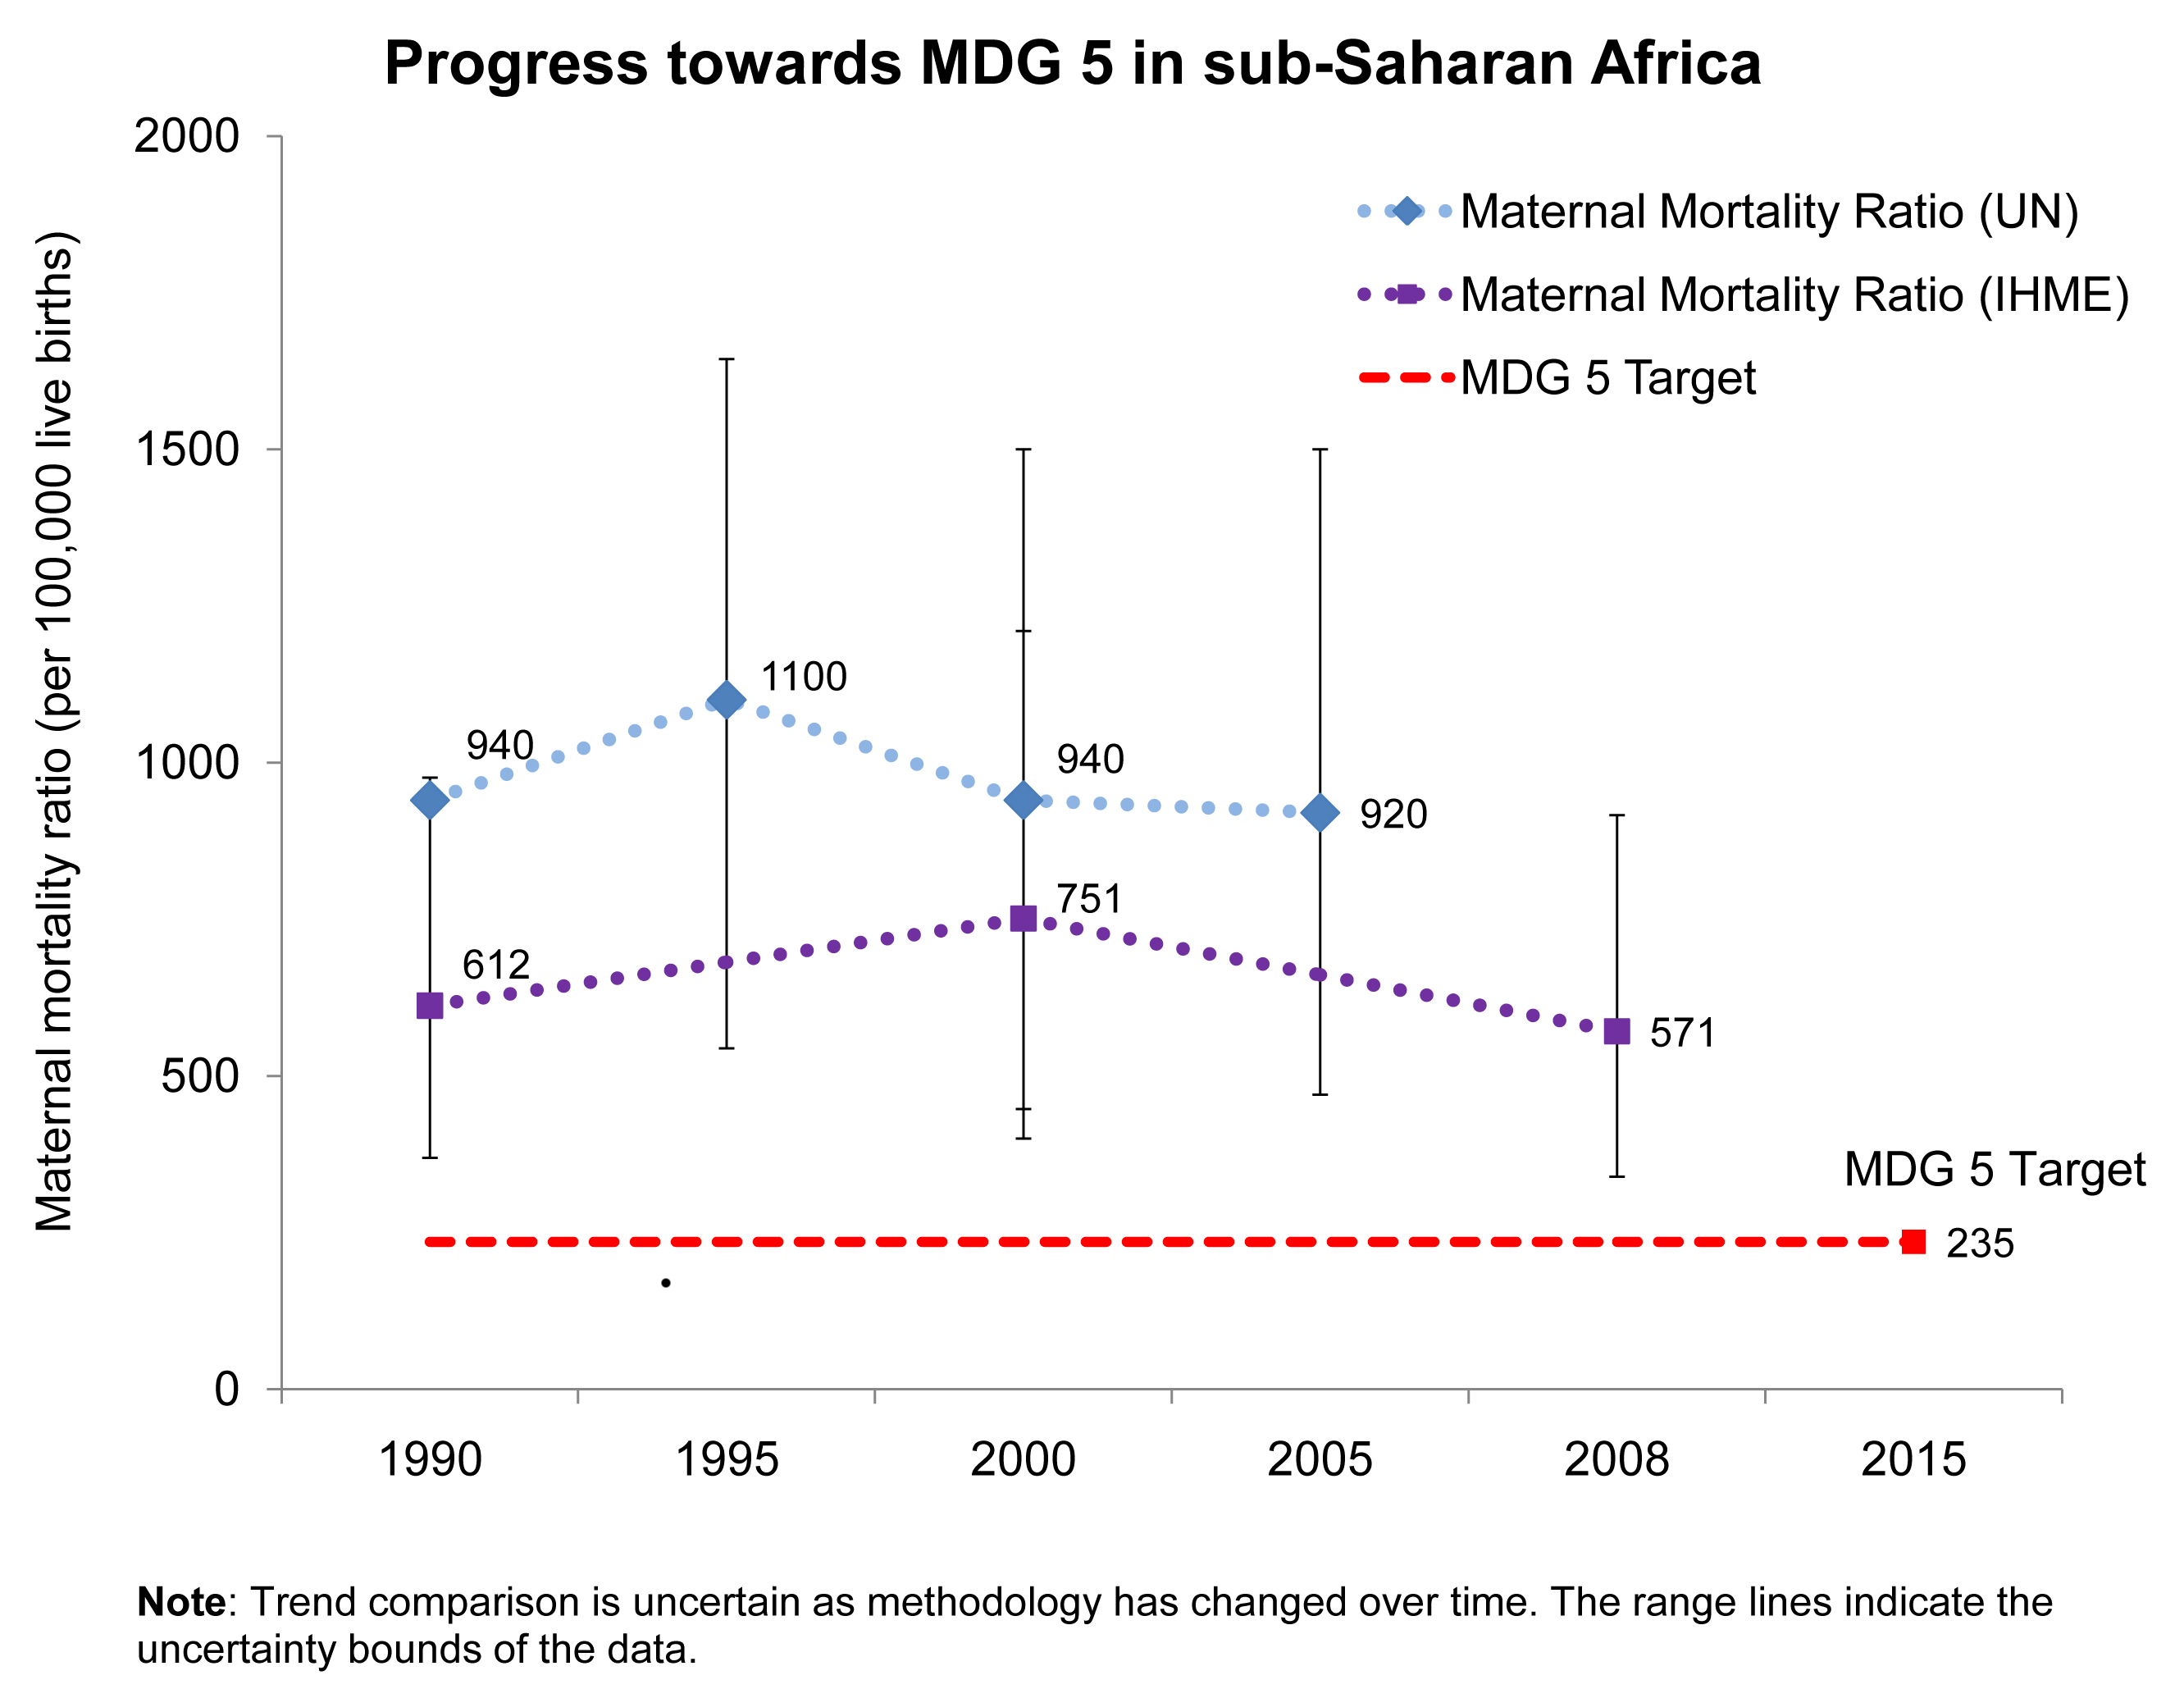 Progress towards Millennium Development Goal 5 for maternal survival in sub-Saharan Africa.